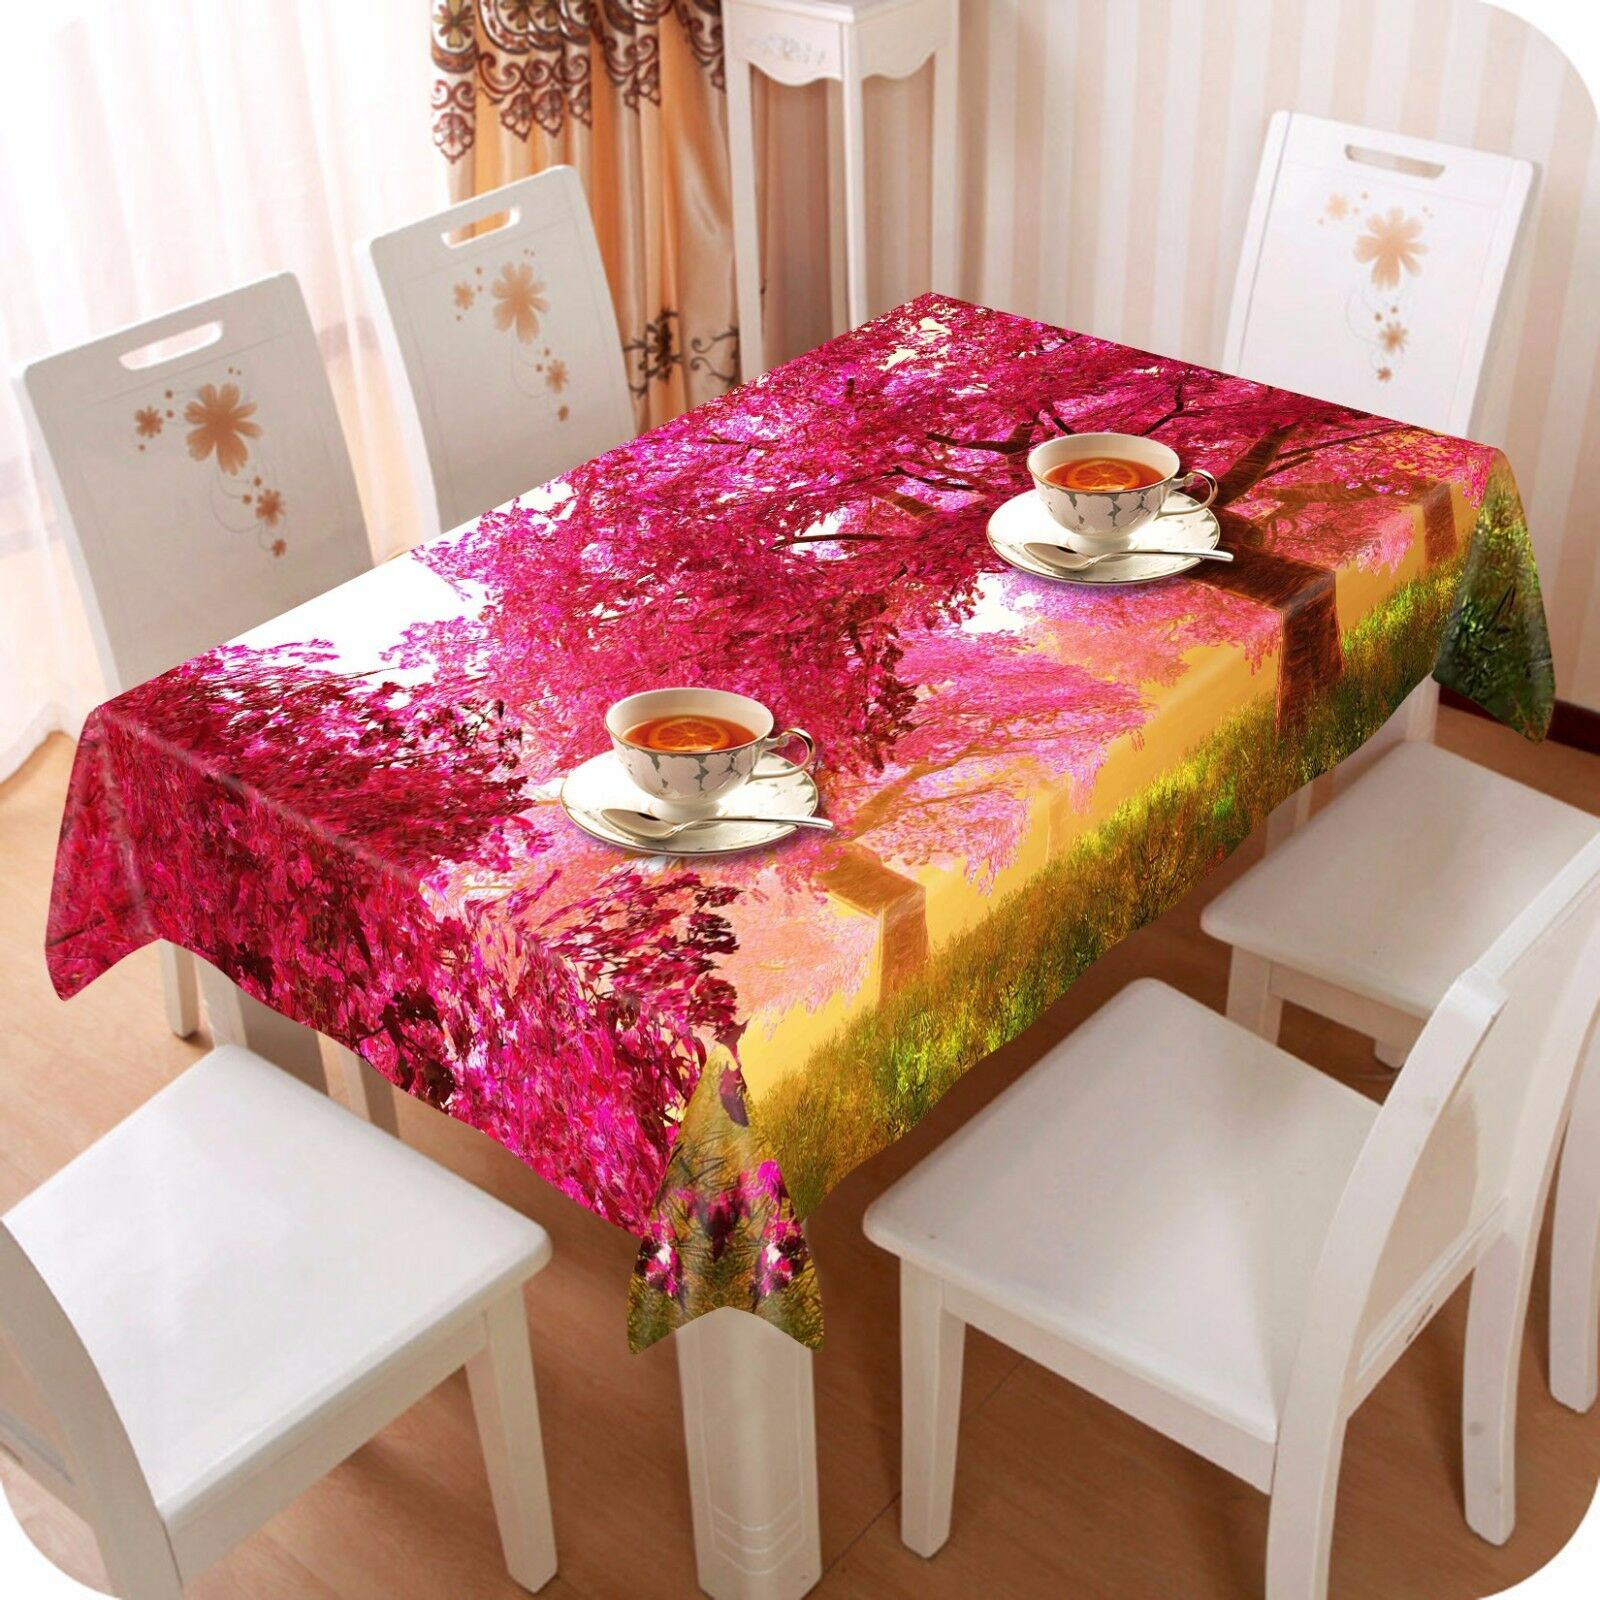 3D Roseo 4937 Tablecloth Table Cover Cloth Birthday Party Event AJ WALLPAPER AU